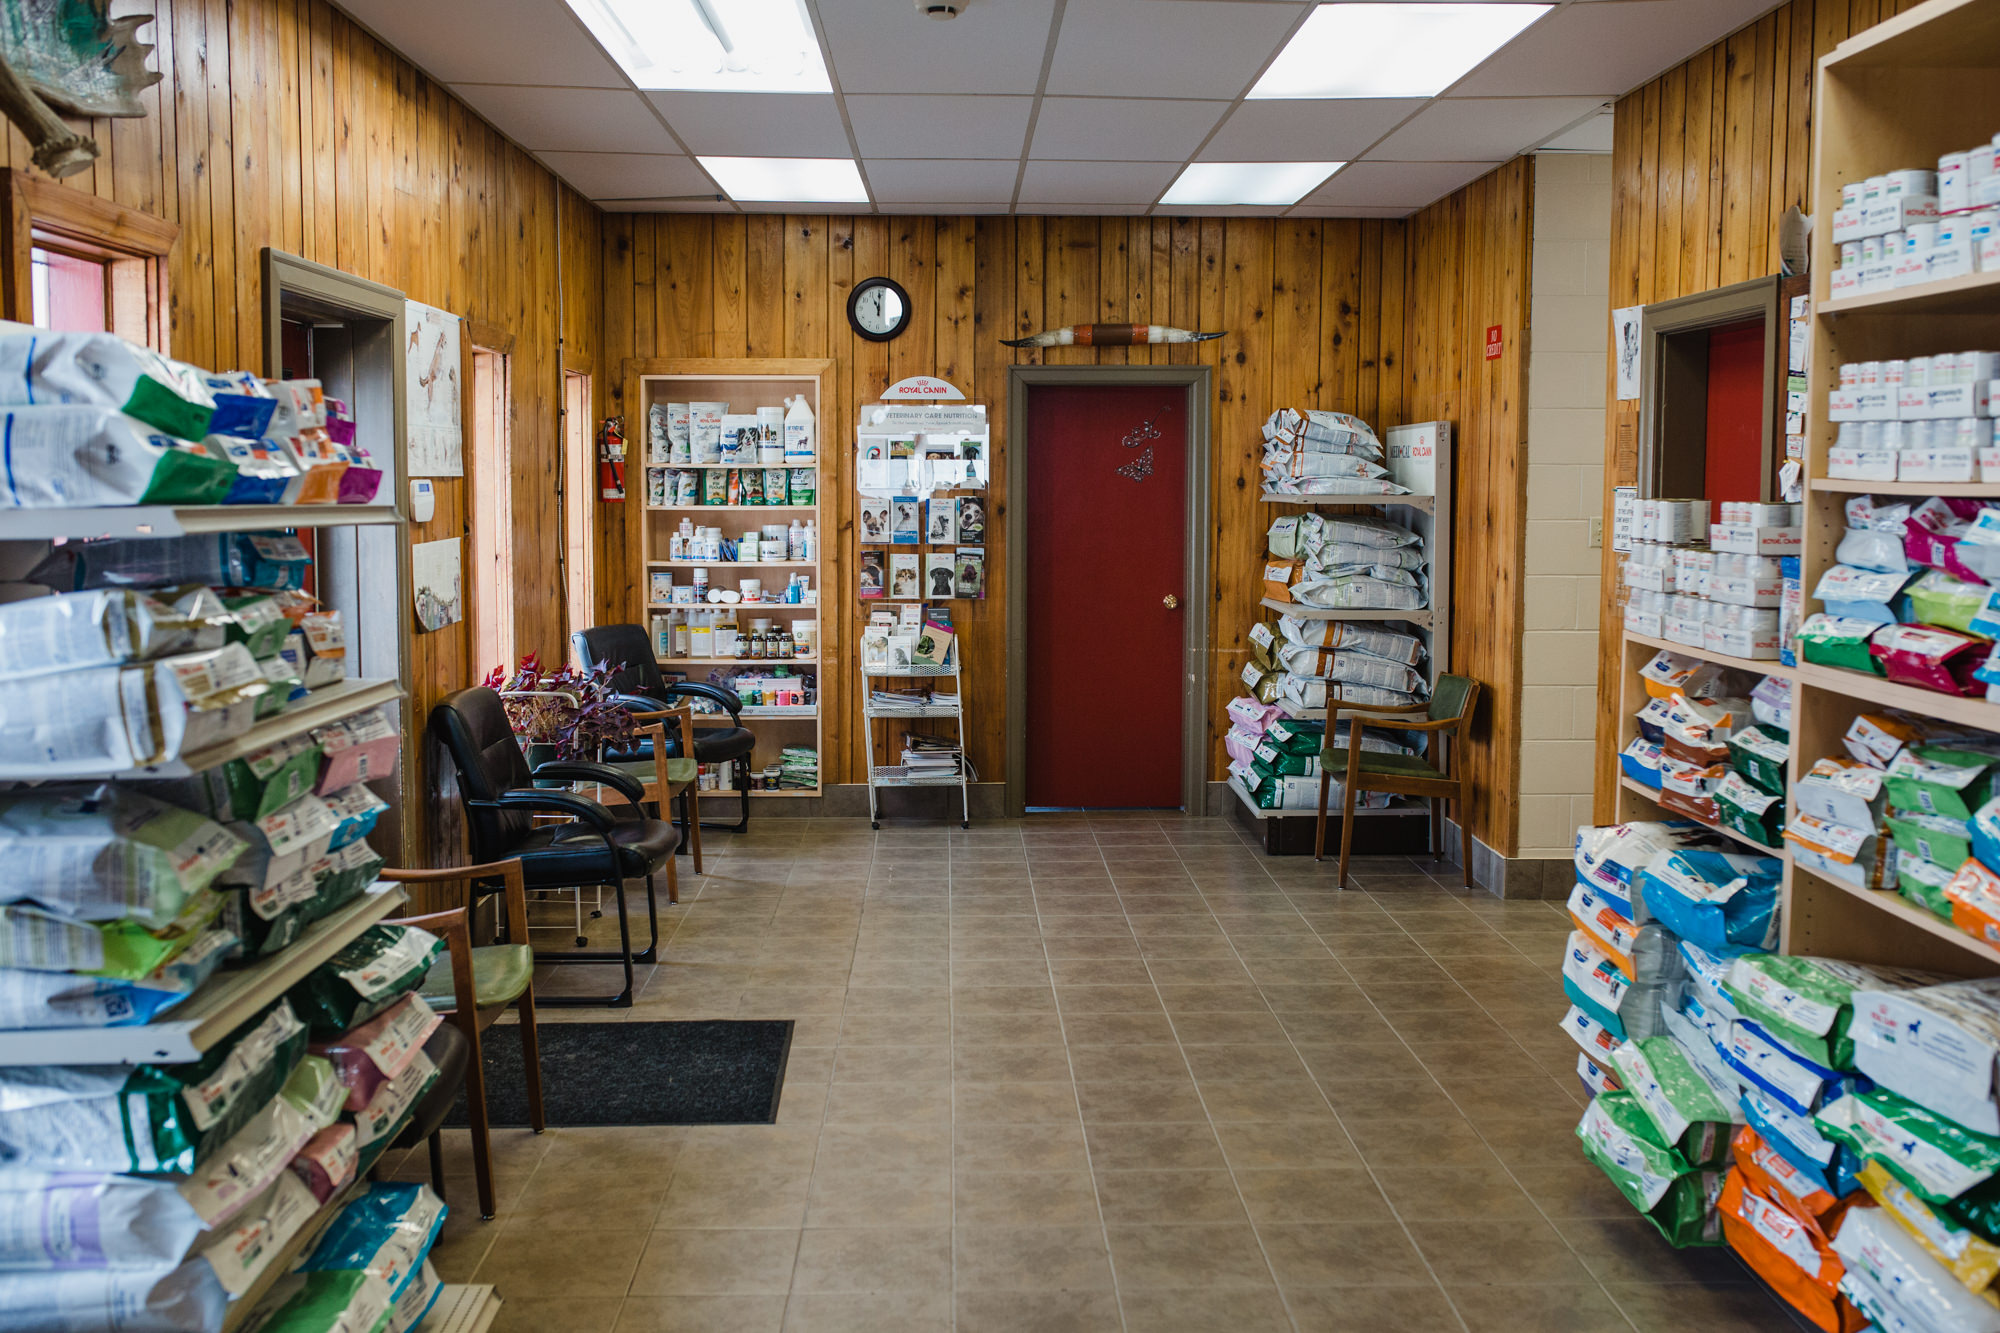 quesnel-verterinary-clinic-qvc-quesnel-vets-large-small-animal-clinic-quesnel-bc (31 of 43).jpg